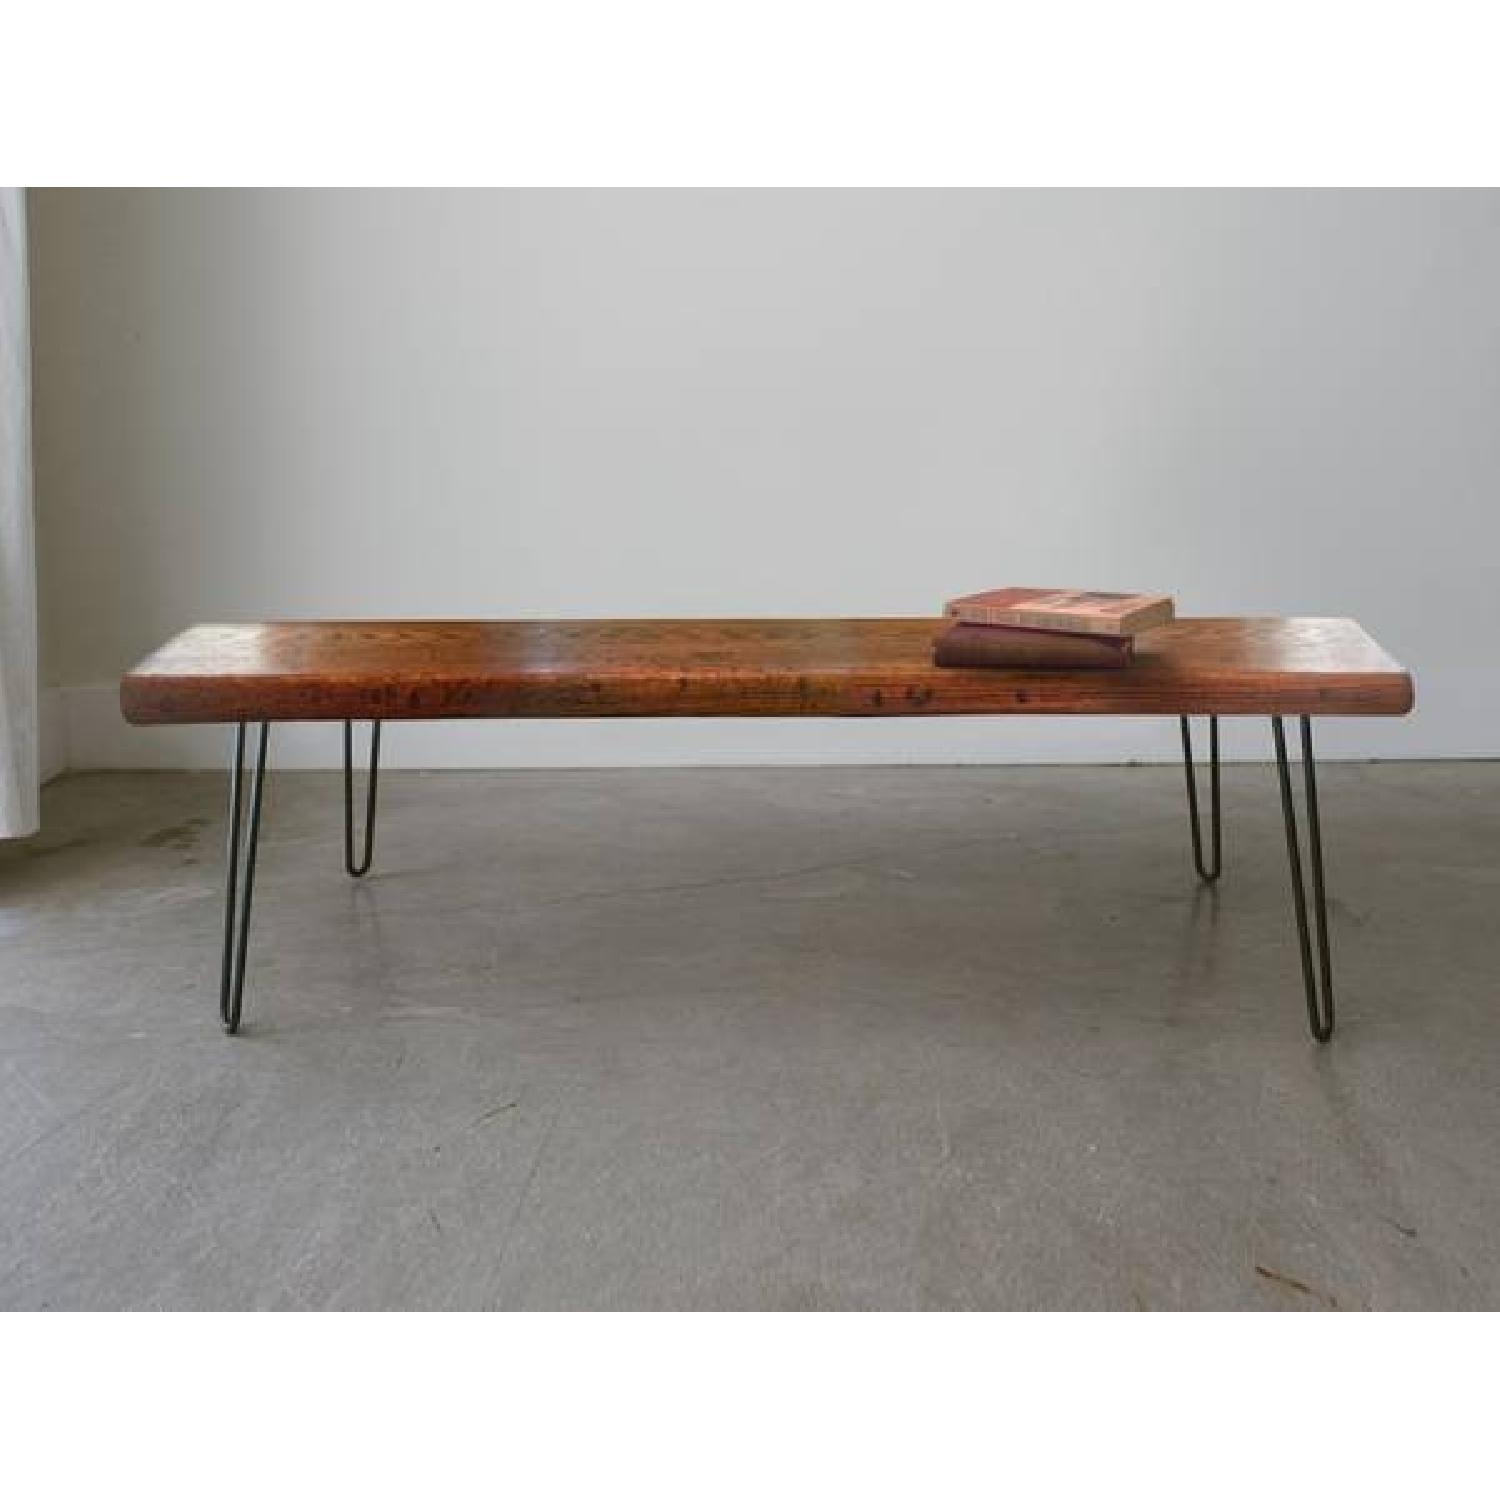 FurnitureNYC Manhattan Reclaimed Coffee Table w/ Hairpin Legs - image-1